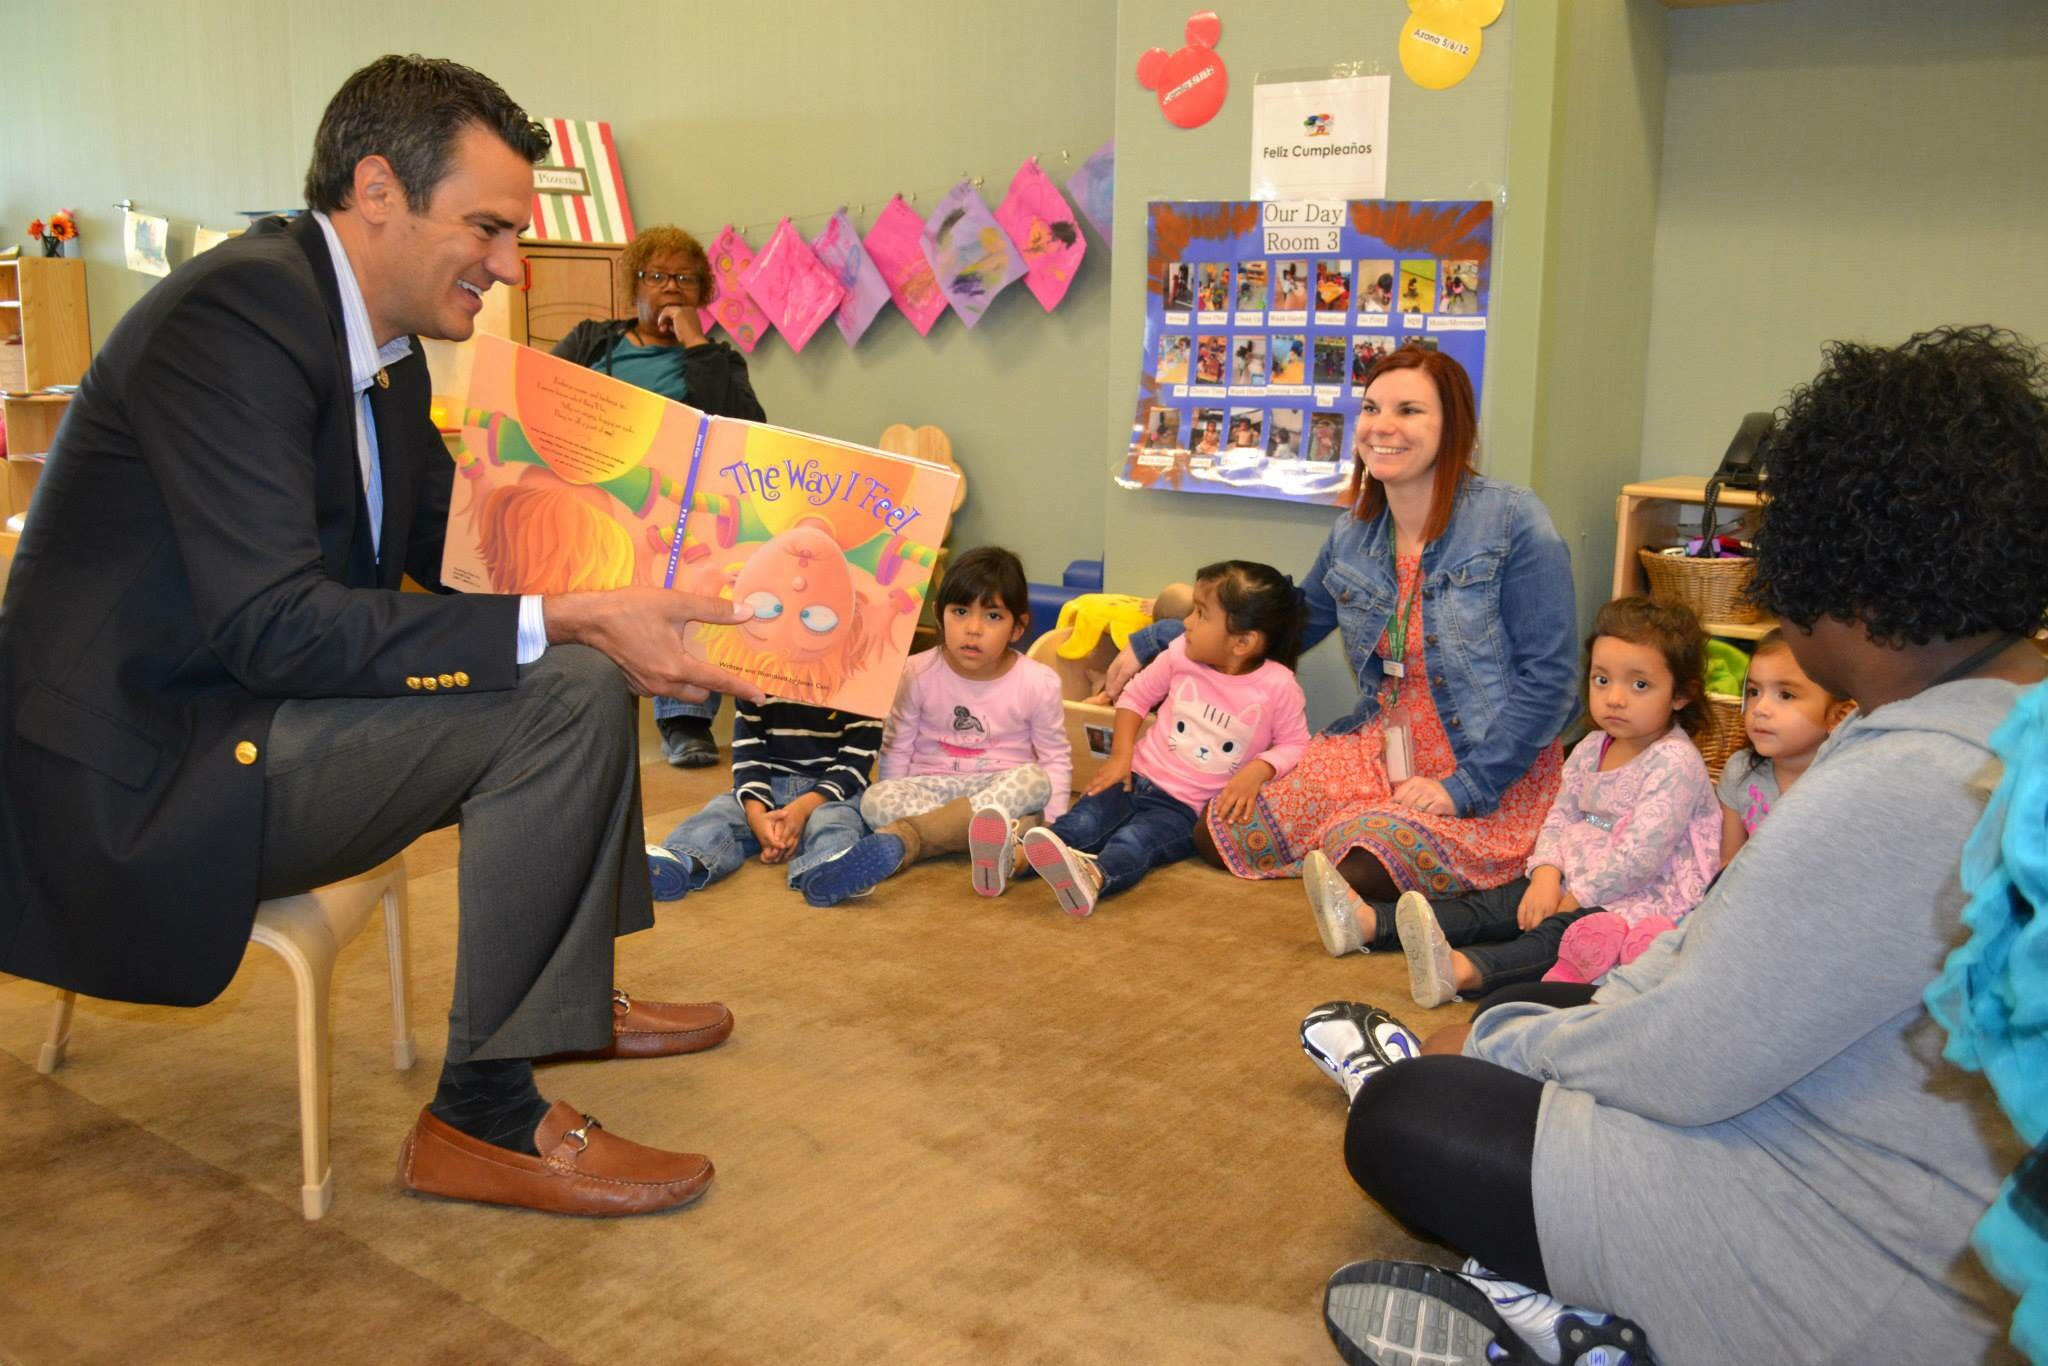 Yoder_reading_to_kids.JPG